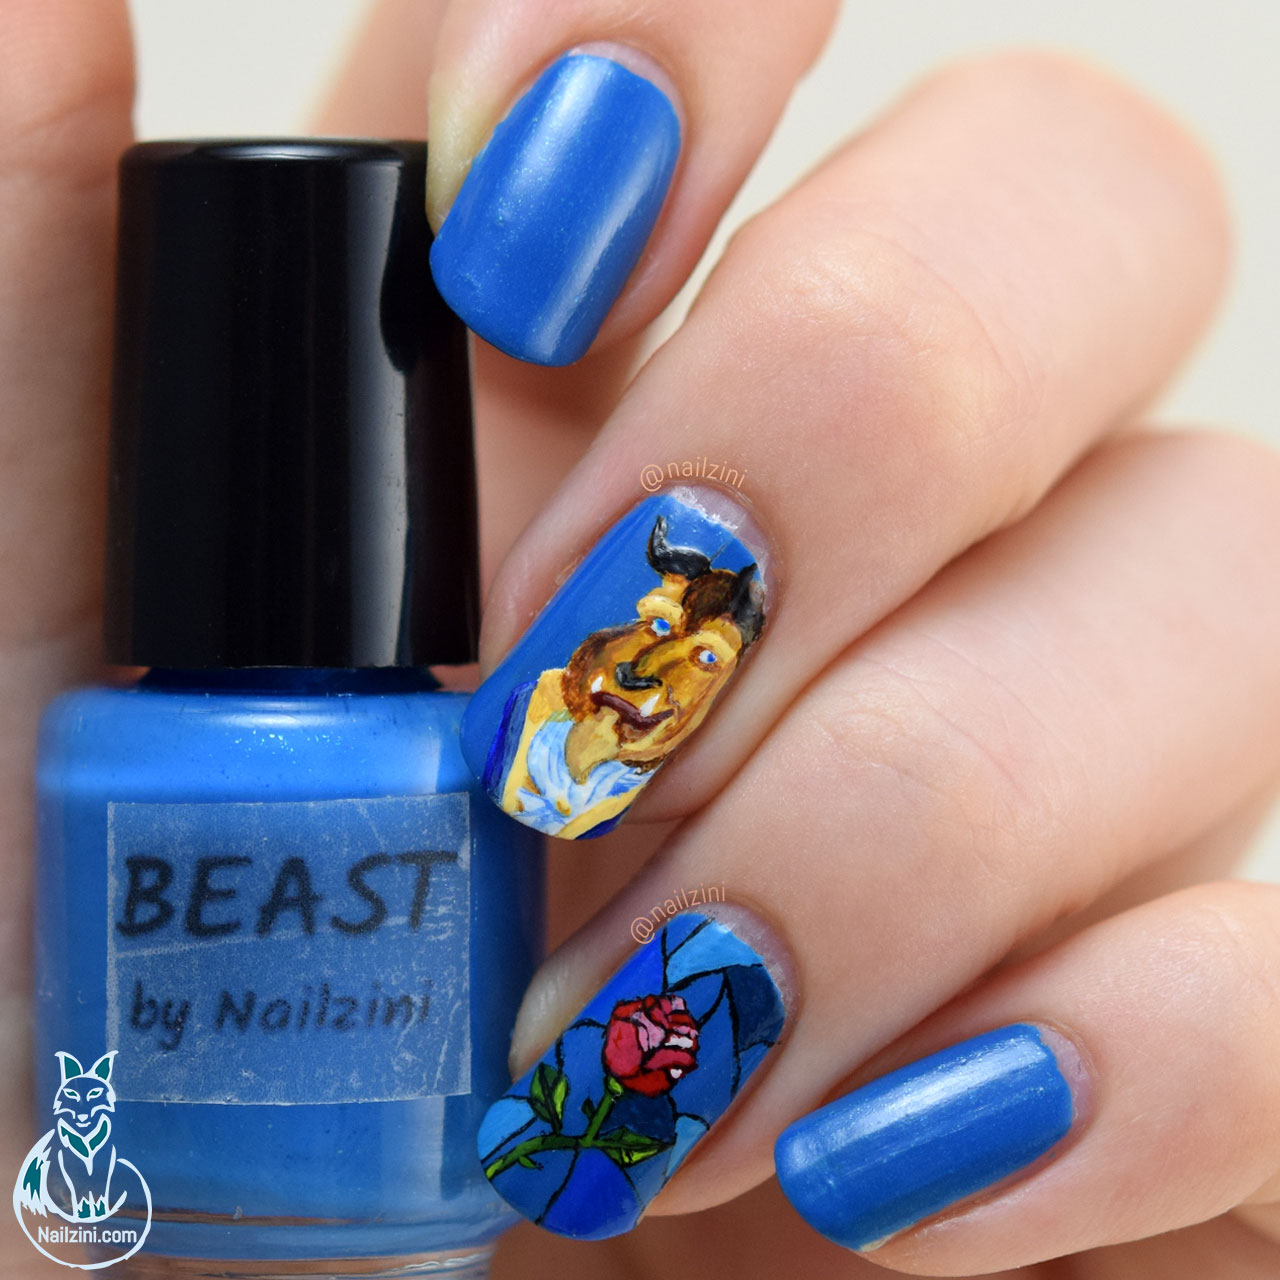 Beauty and the Beast stained glass Rose Nail Art Nailzini